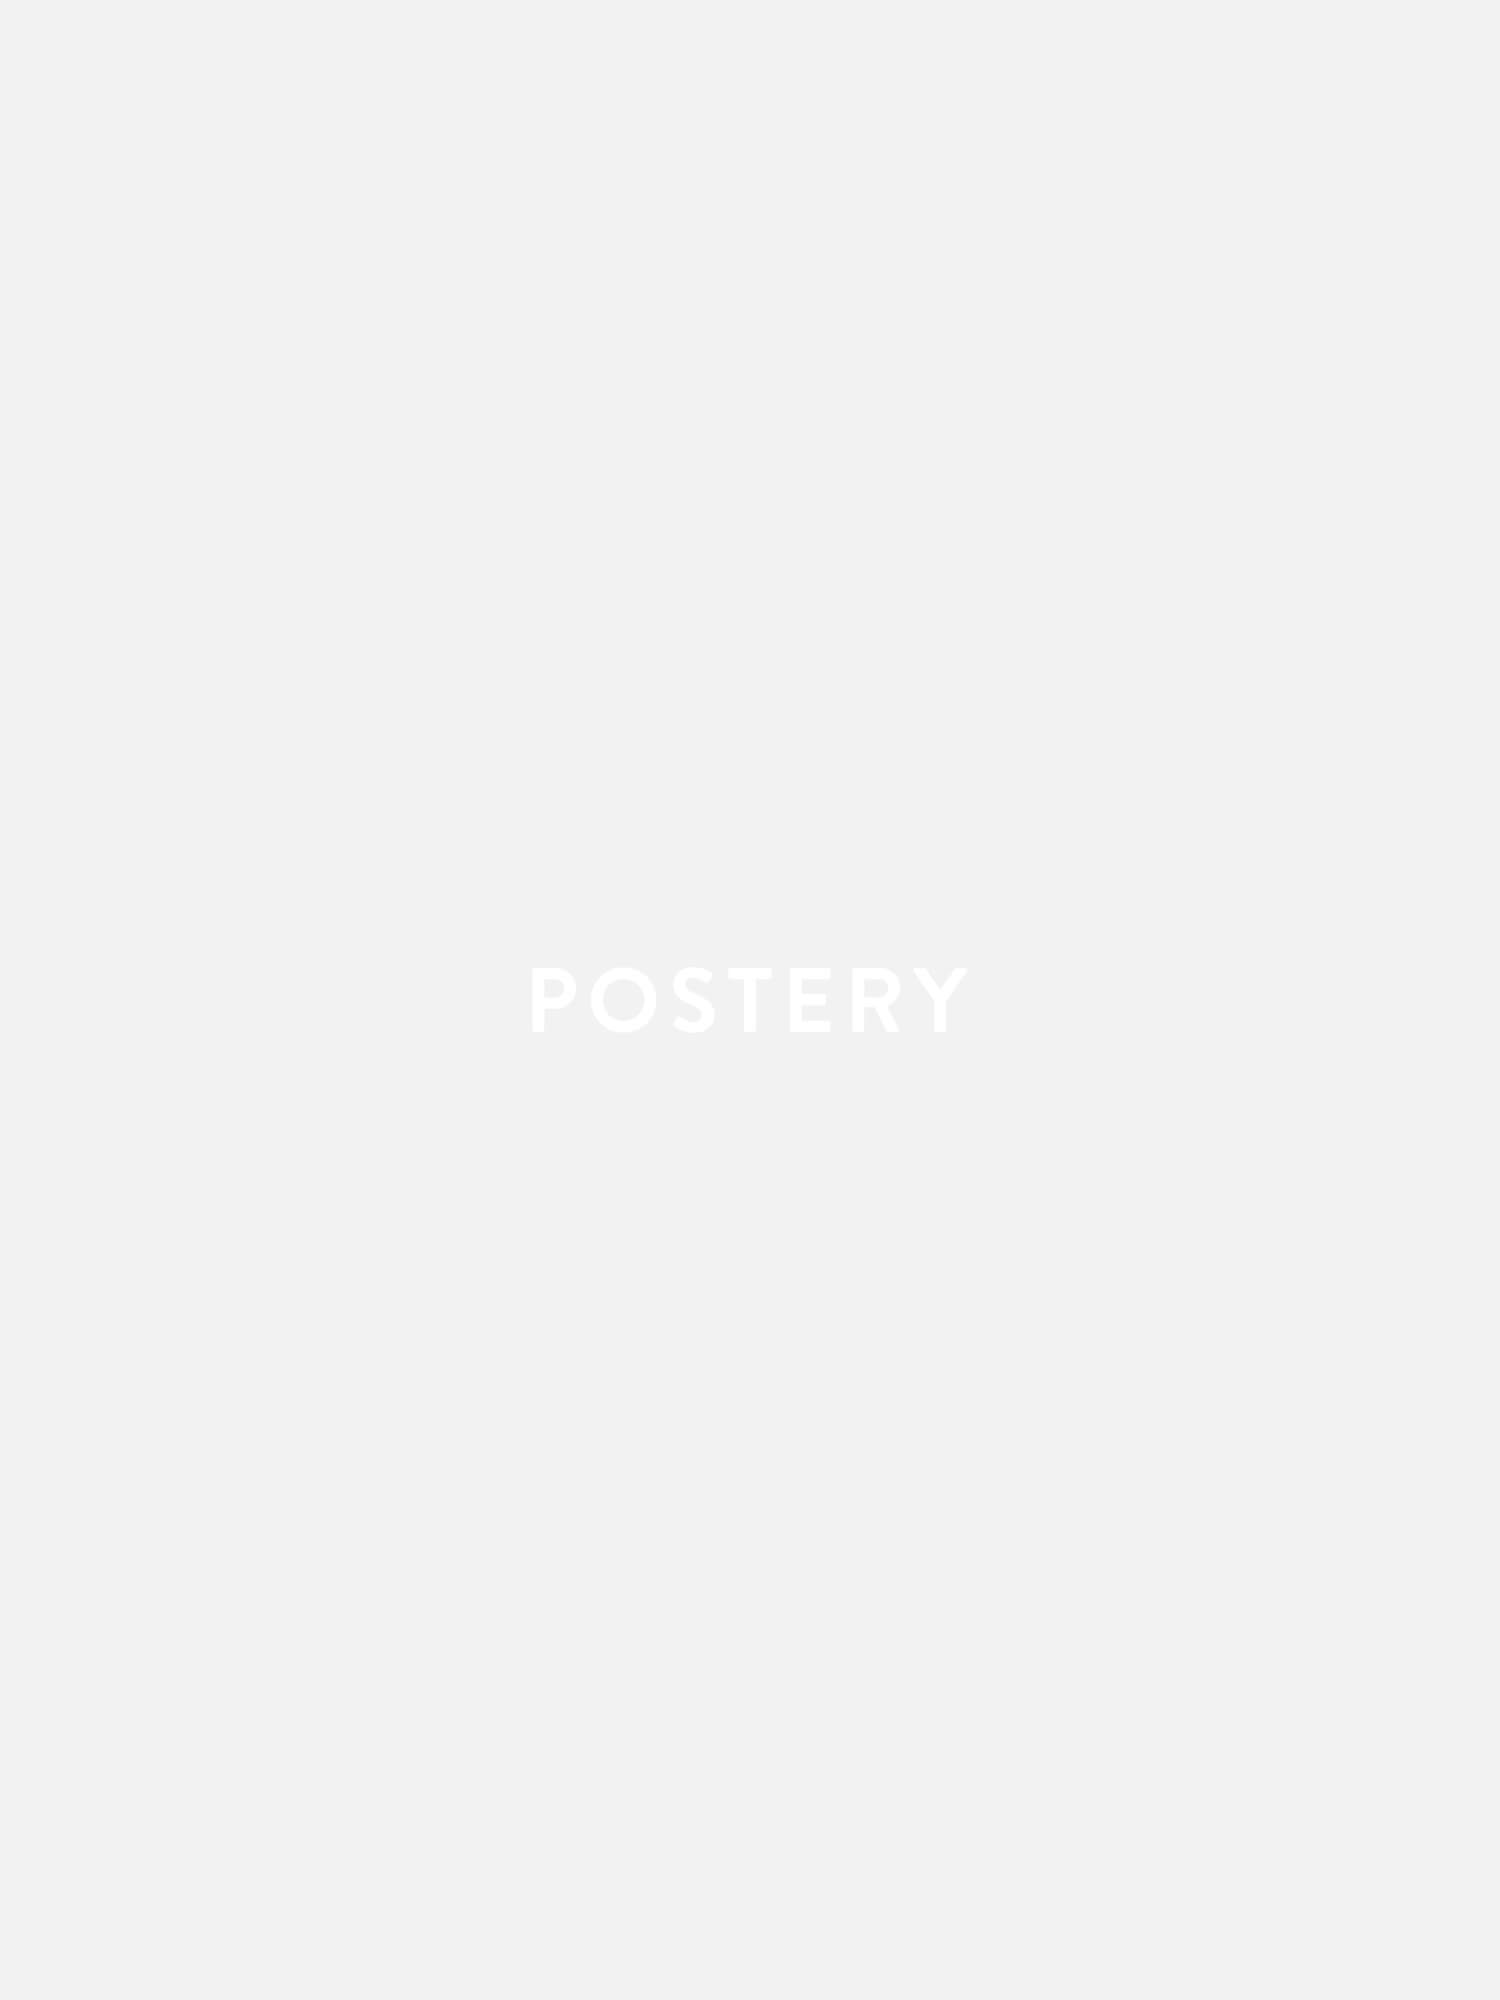 Walking Surfer Poster